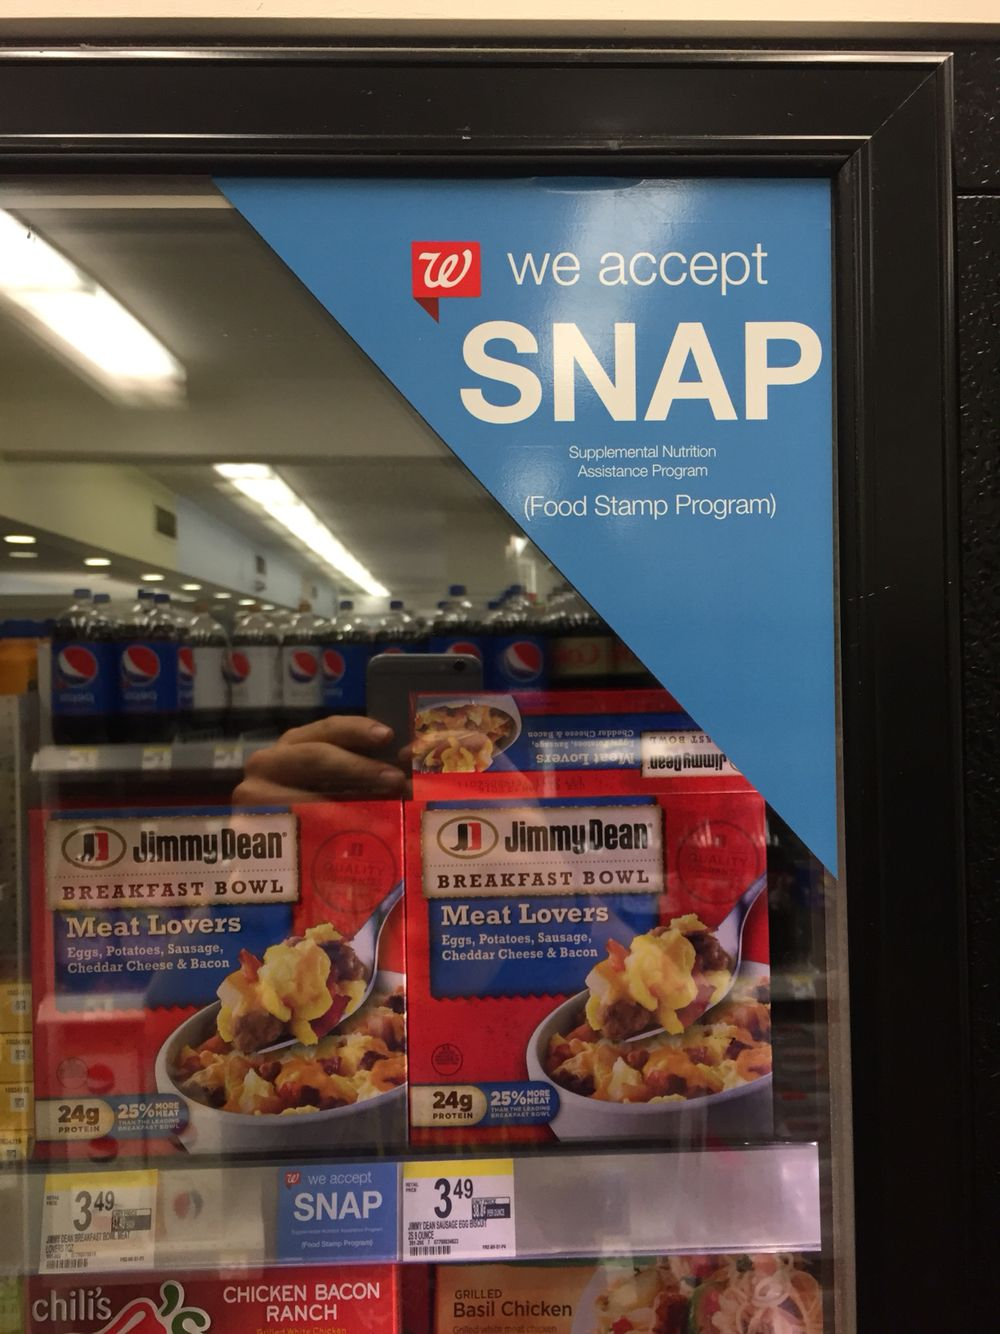 Snap food stamps to purchase selected foods breakfast